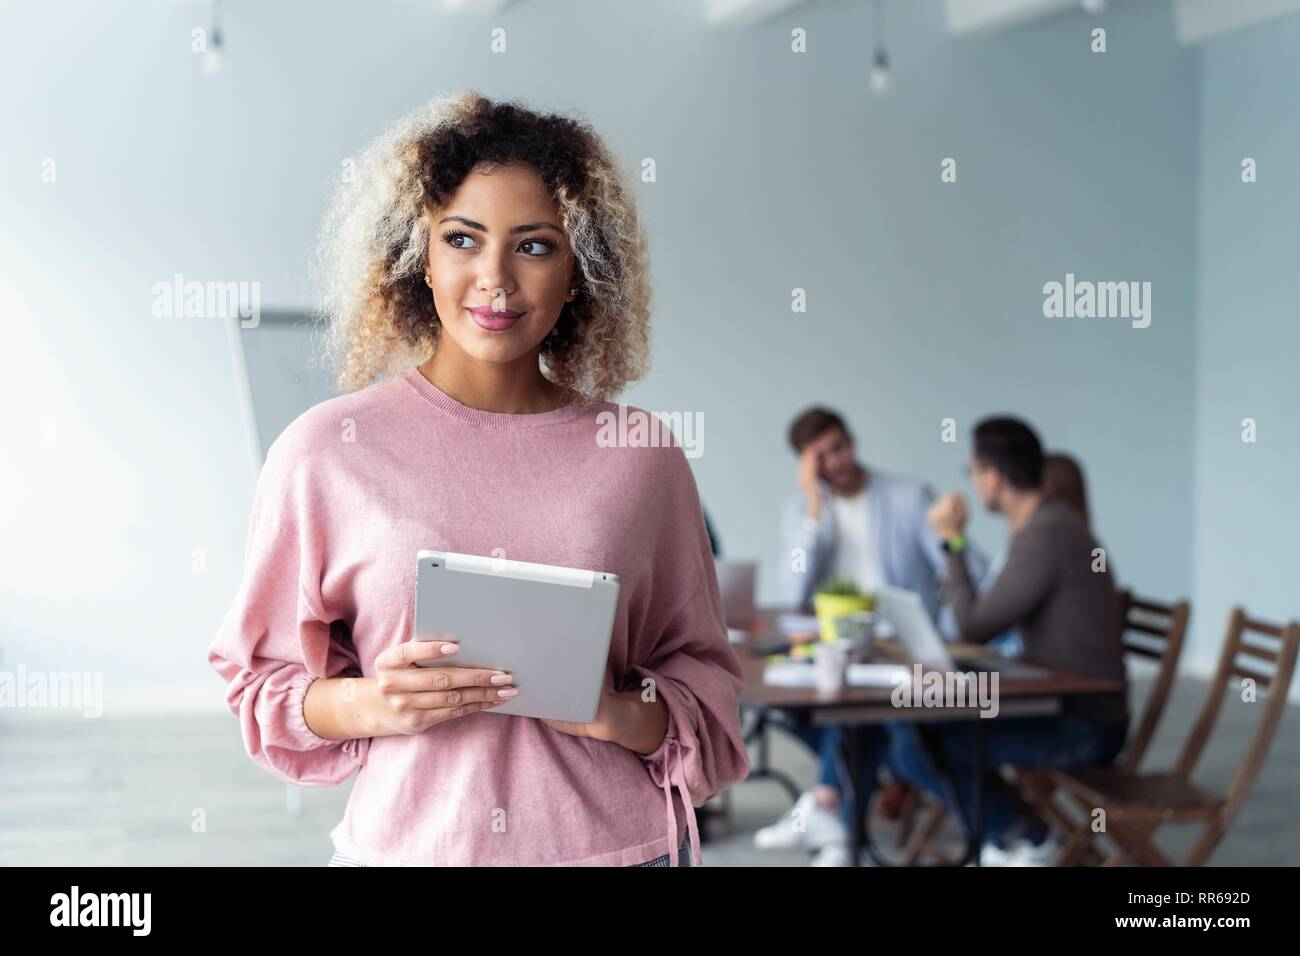 Business woman standing in foreground with a tablet in her hands, her co-workers discussing business matters in the background. - Stock Image